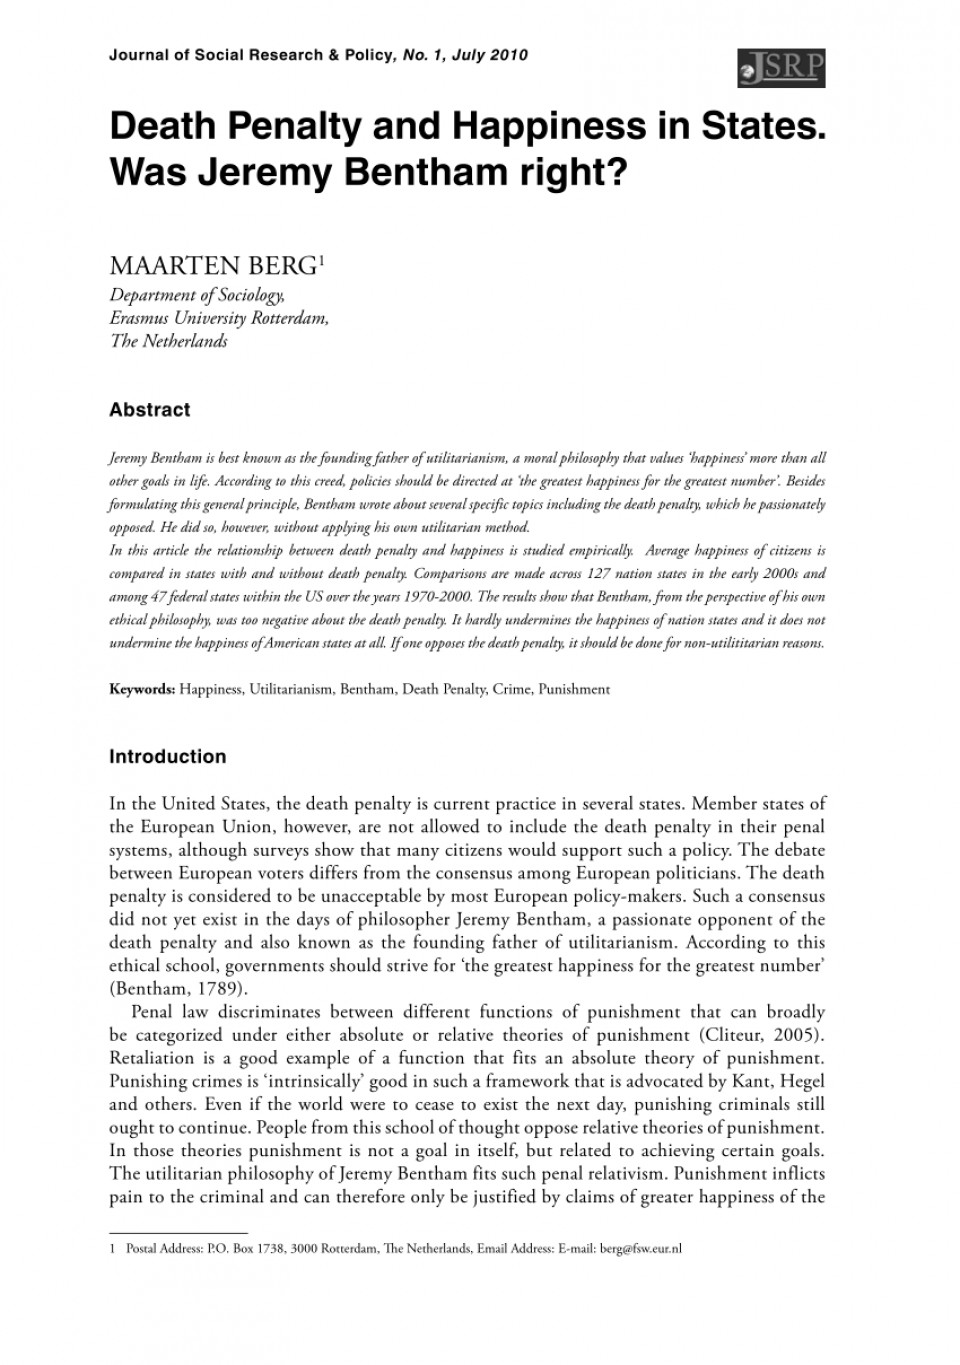 001 Death Penalty Research Paper Abstract Remarkable 960